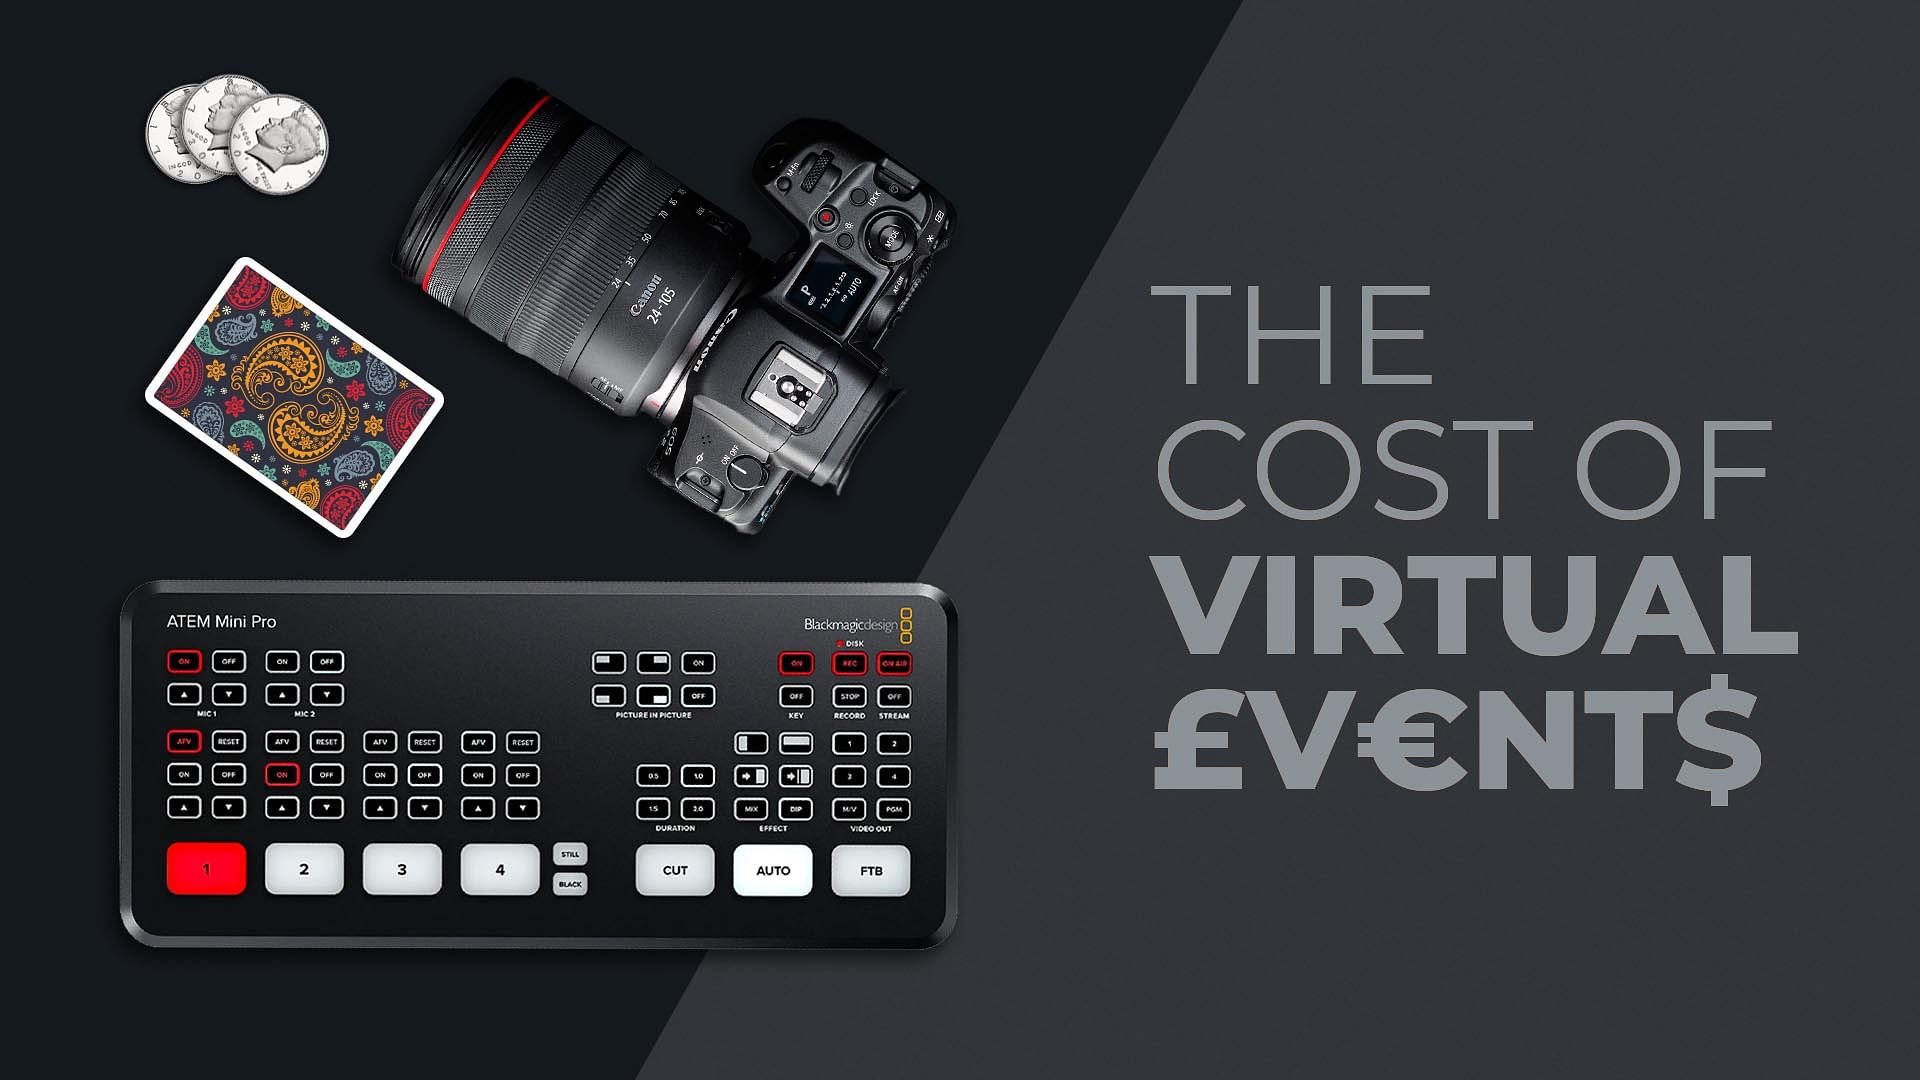 How Much does a Virtual event cost